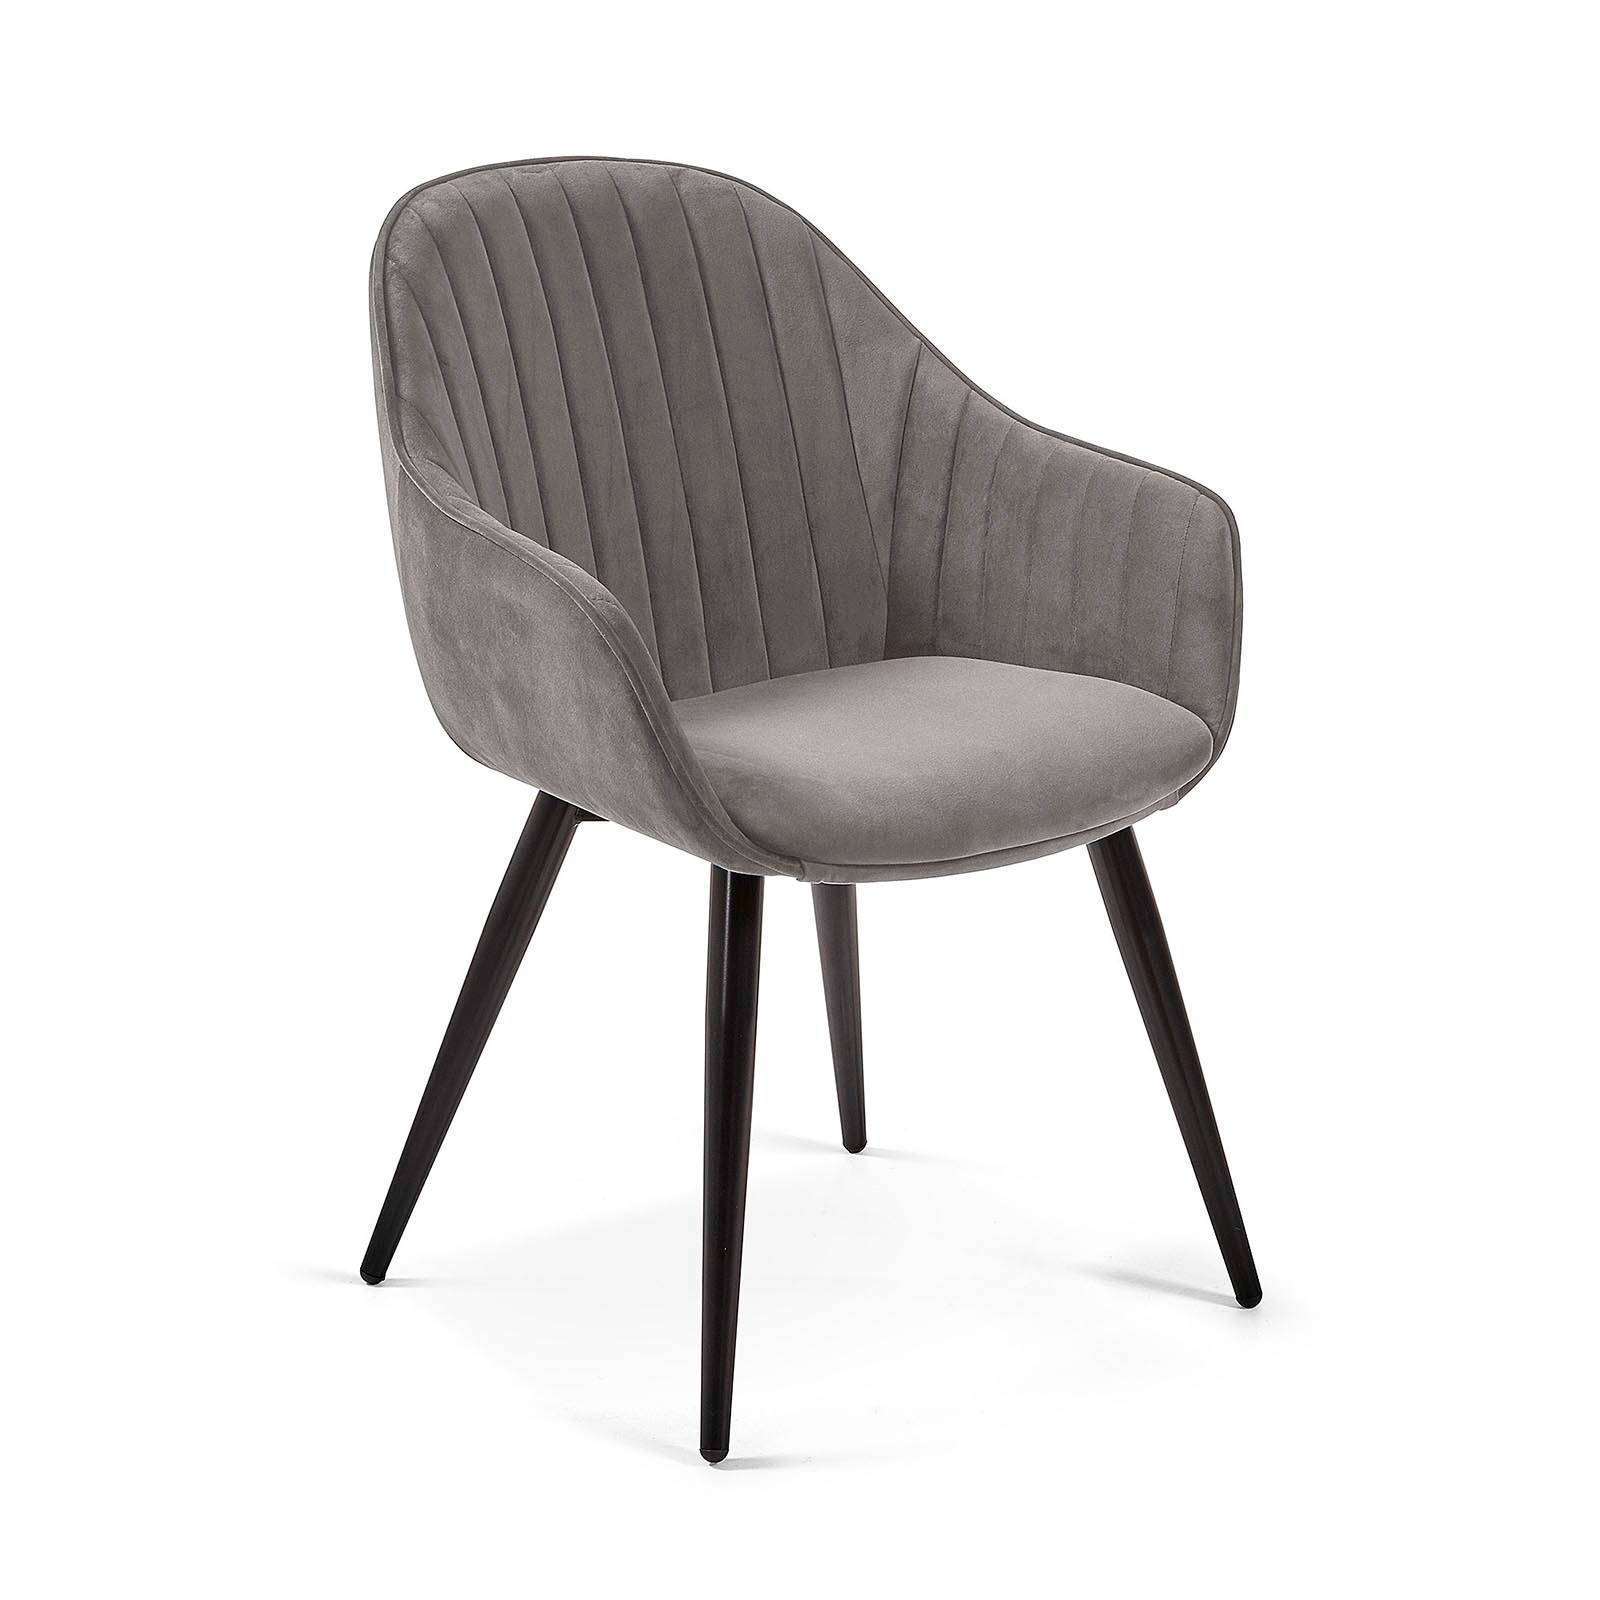 Grey fabric dining chairs with metal legs comfortable china design